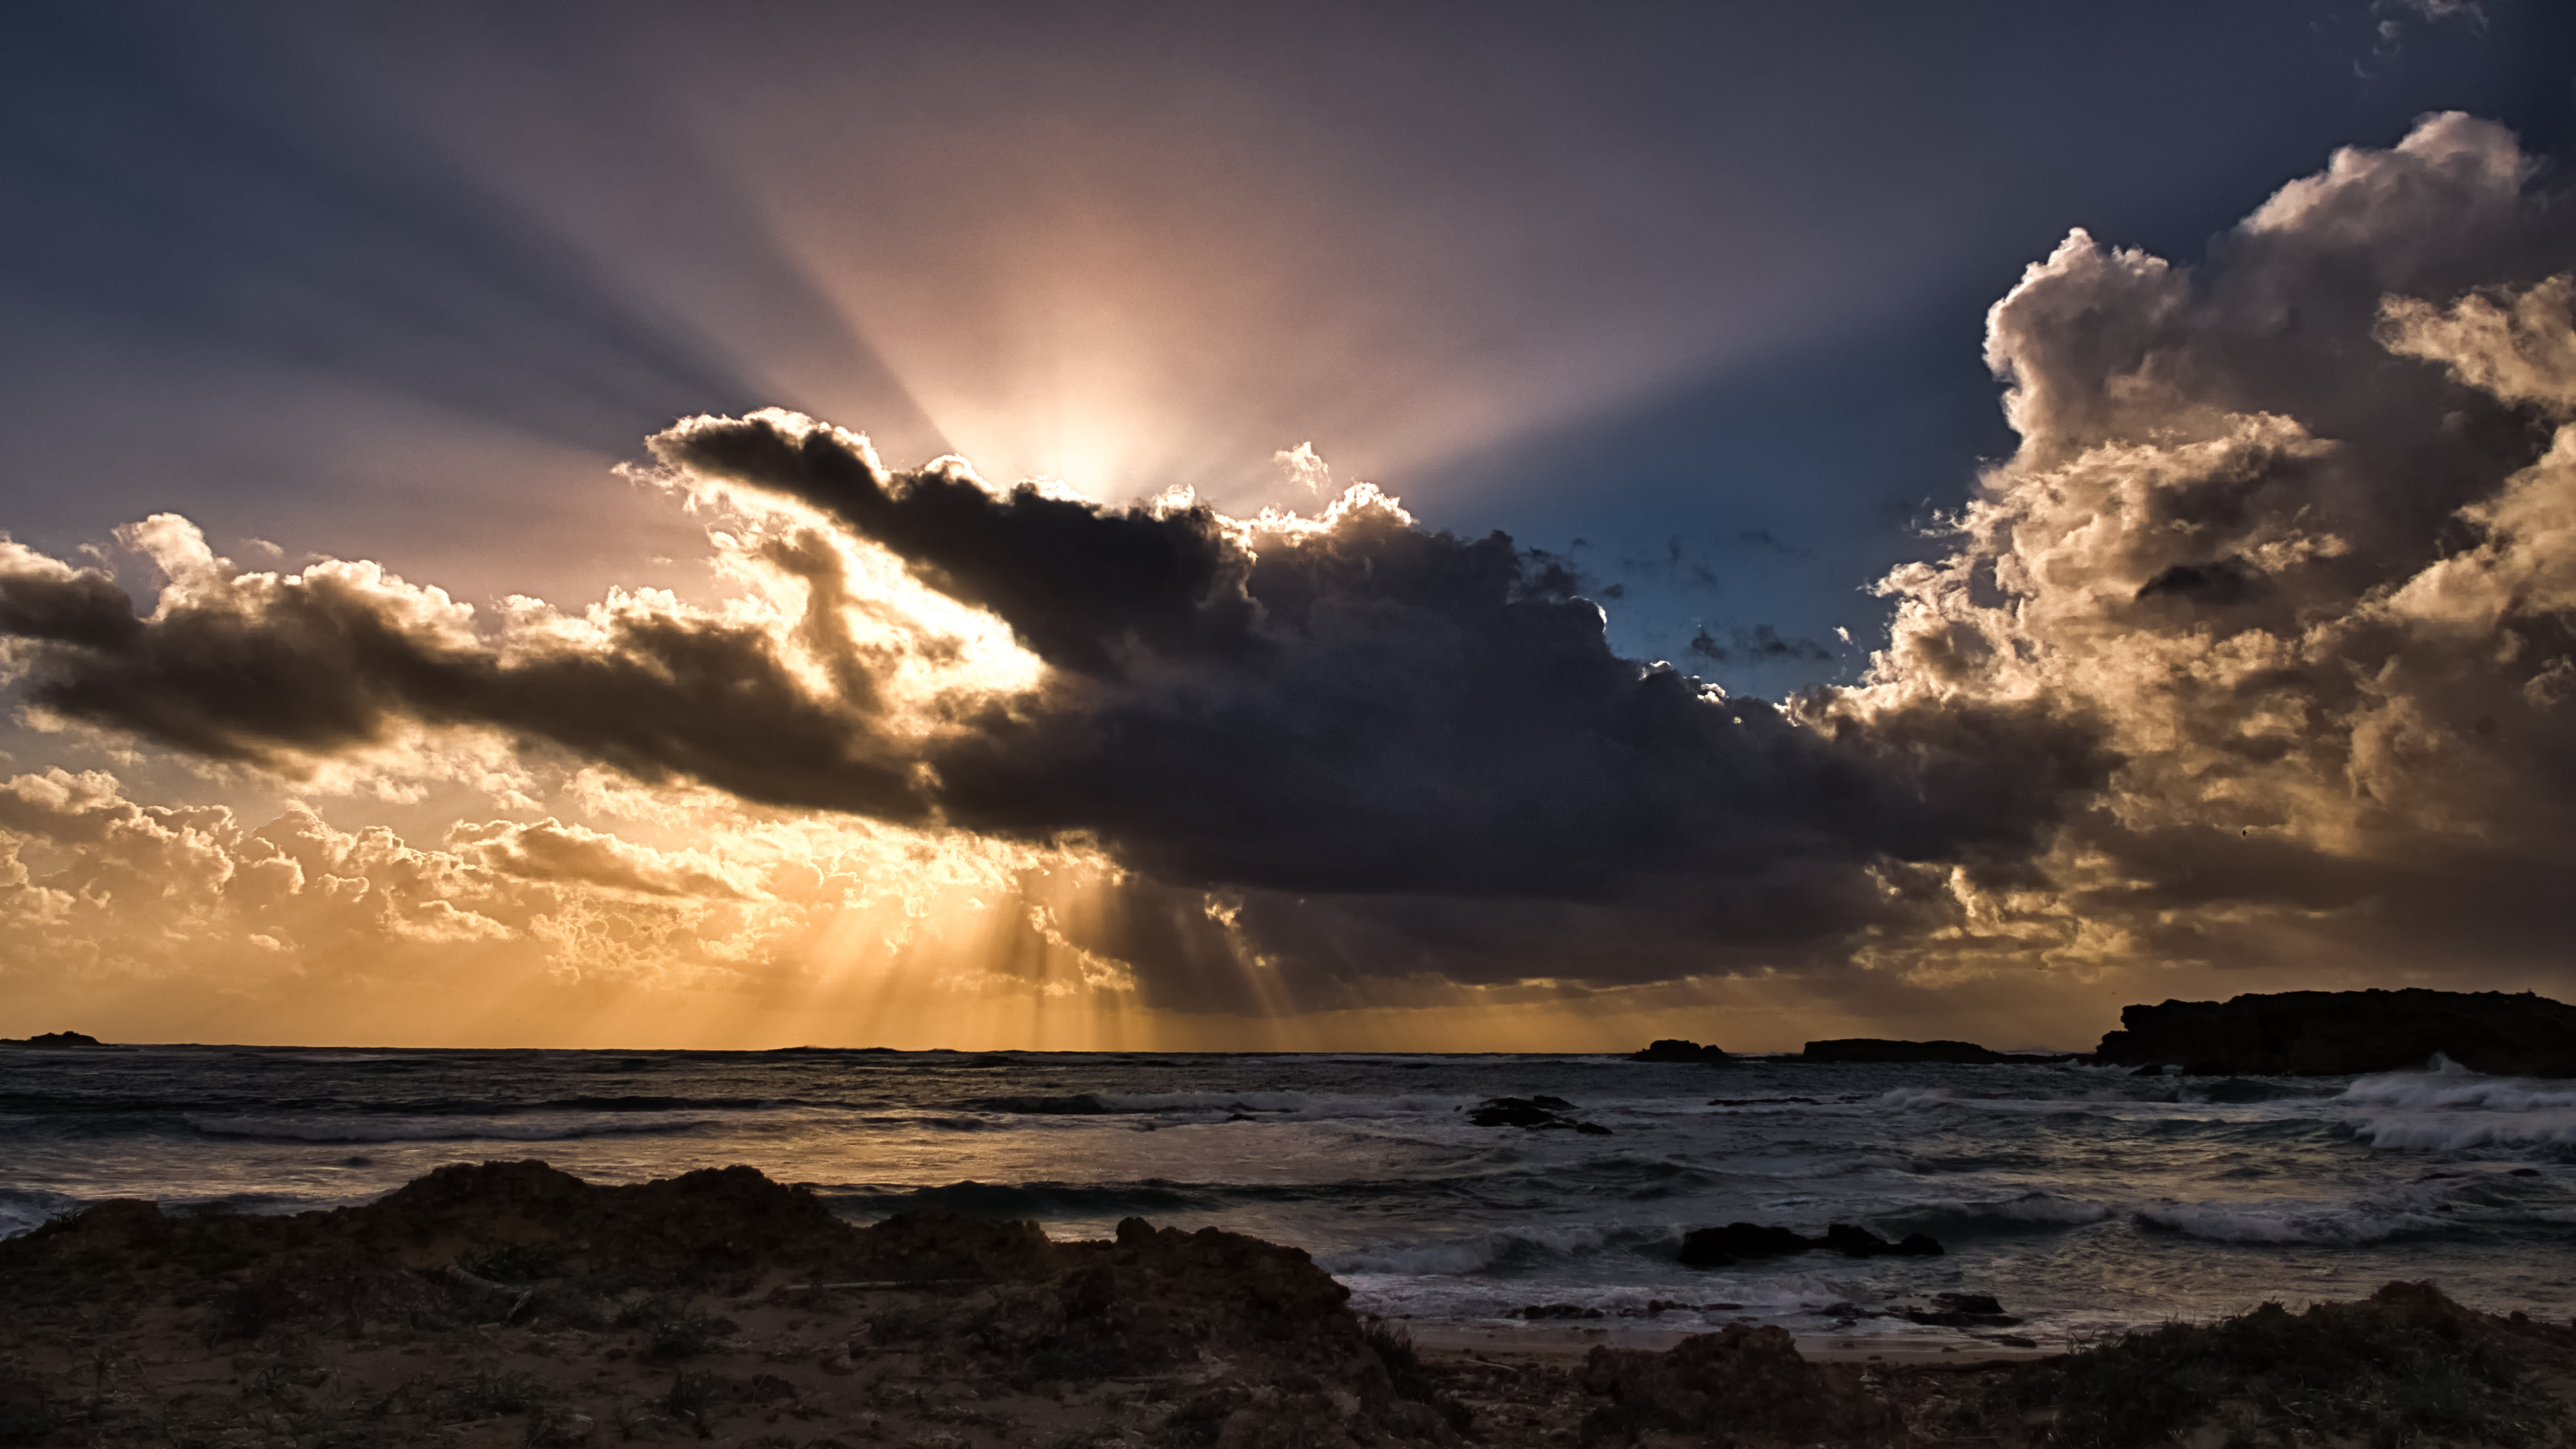 Clouds sun rays passing ocean 5k hd nature 4k wallpapers images backgrounds photos and pictures - Dramatic wallpaper ...